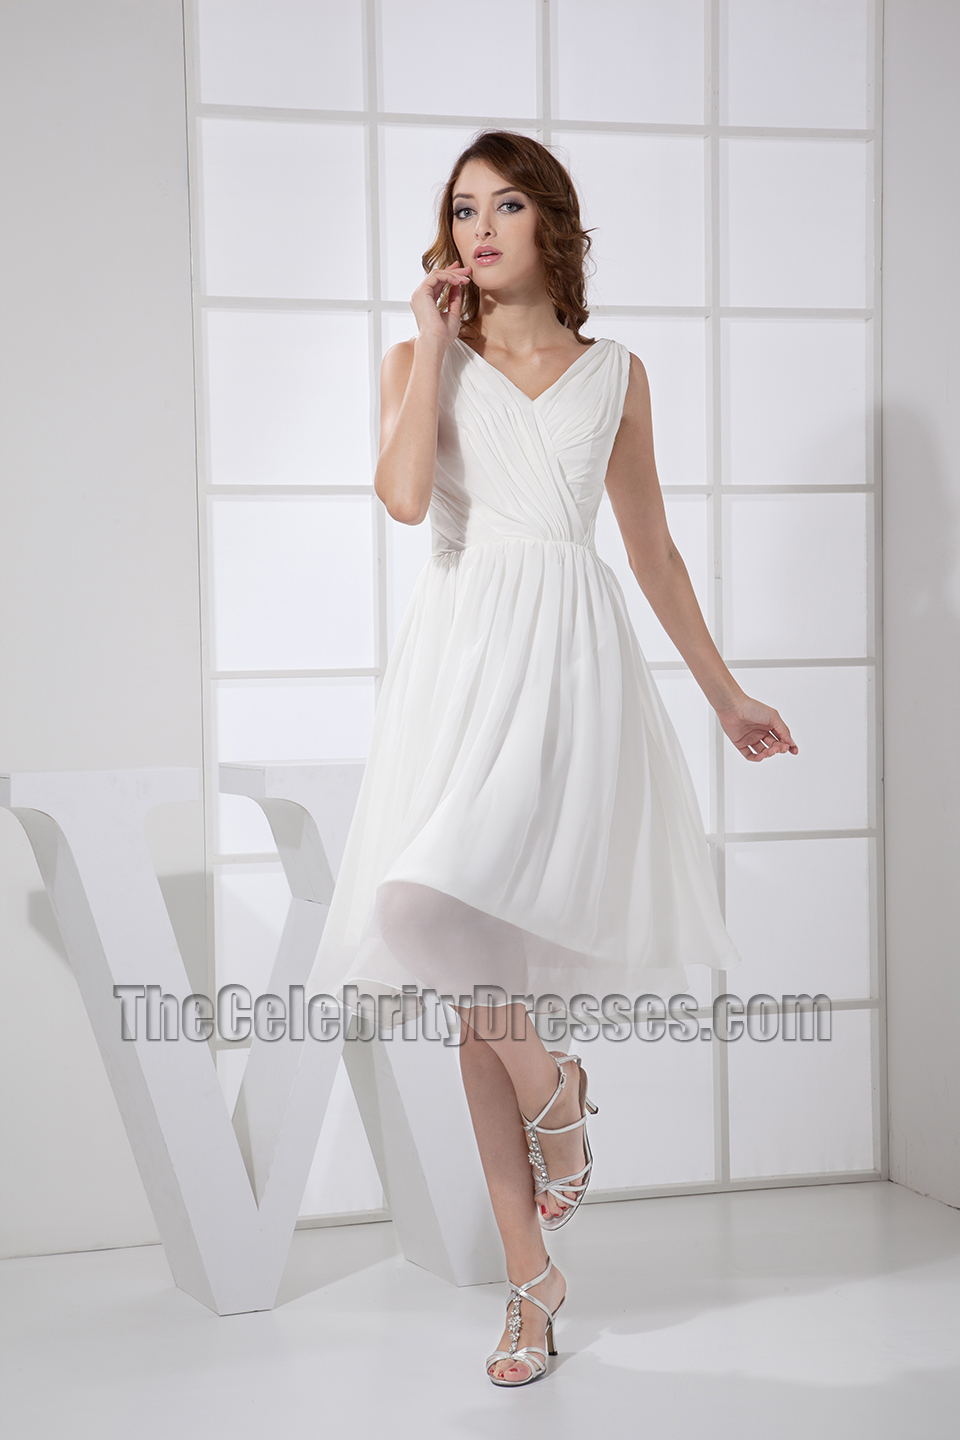 Simple White V Neck A Line Tail Dress Bridesmaid Dresses Thecelebritydresses